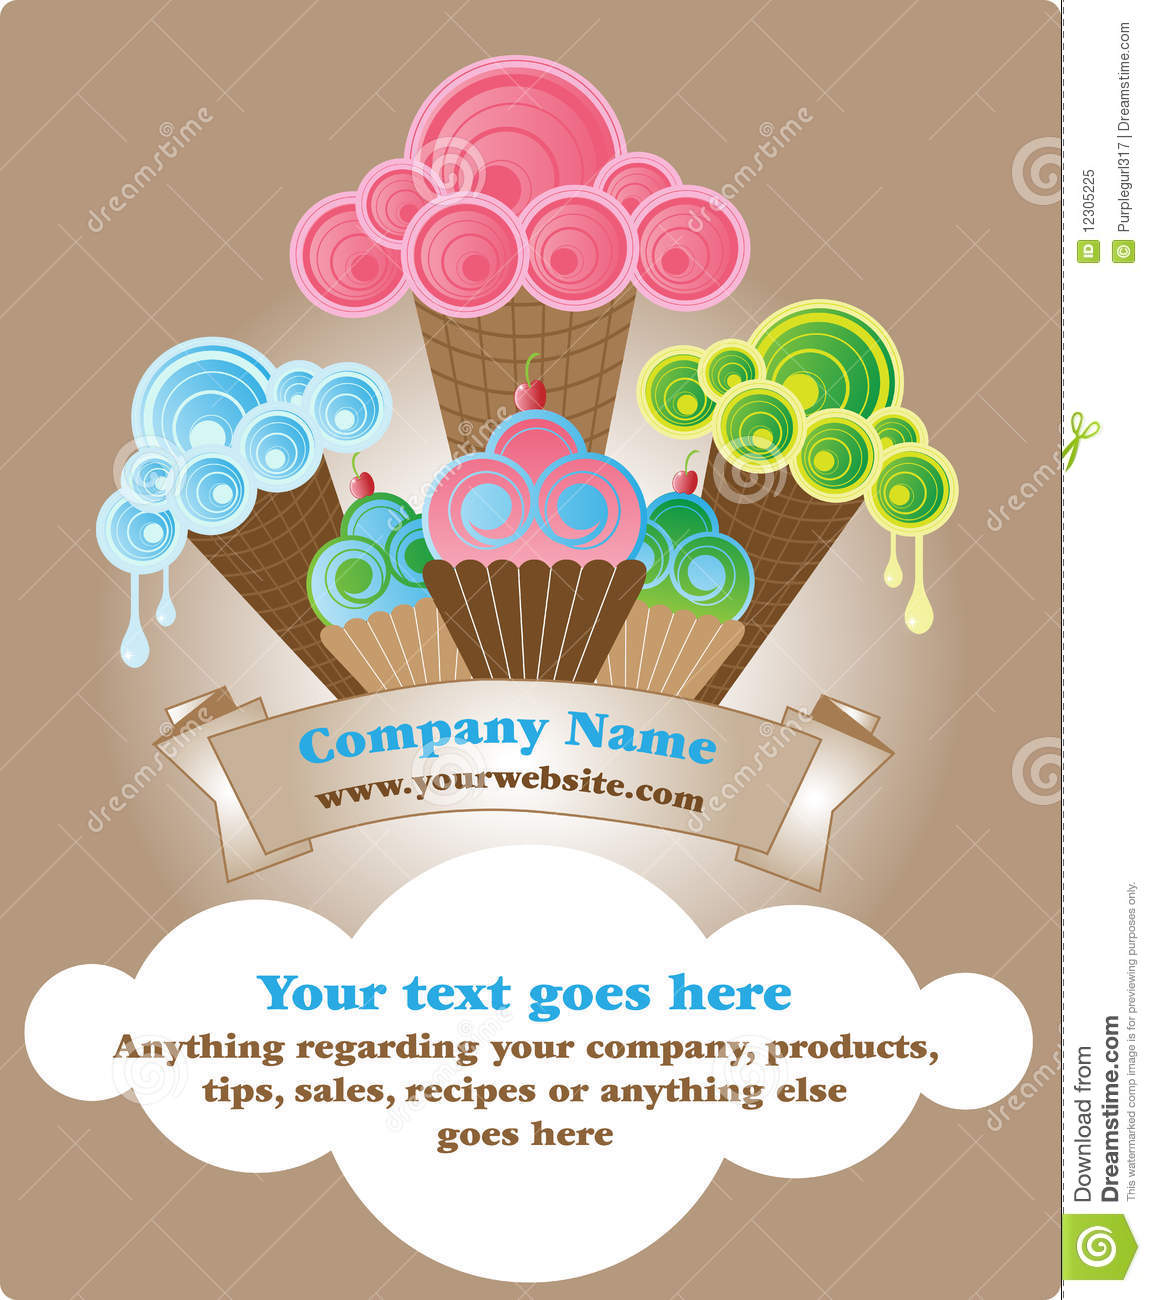 baked goods template royalty stock photo image 12305225 baked goods template